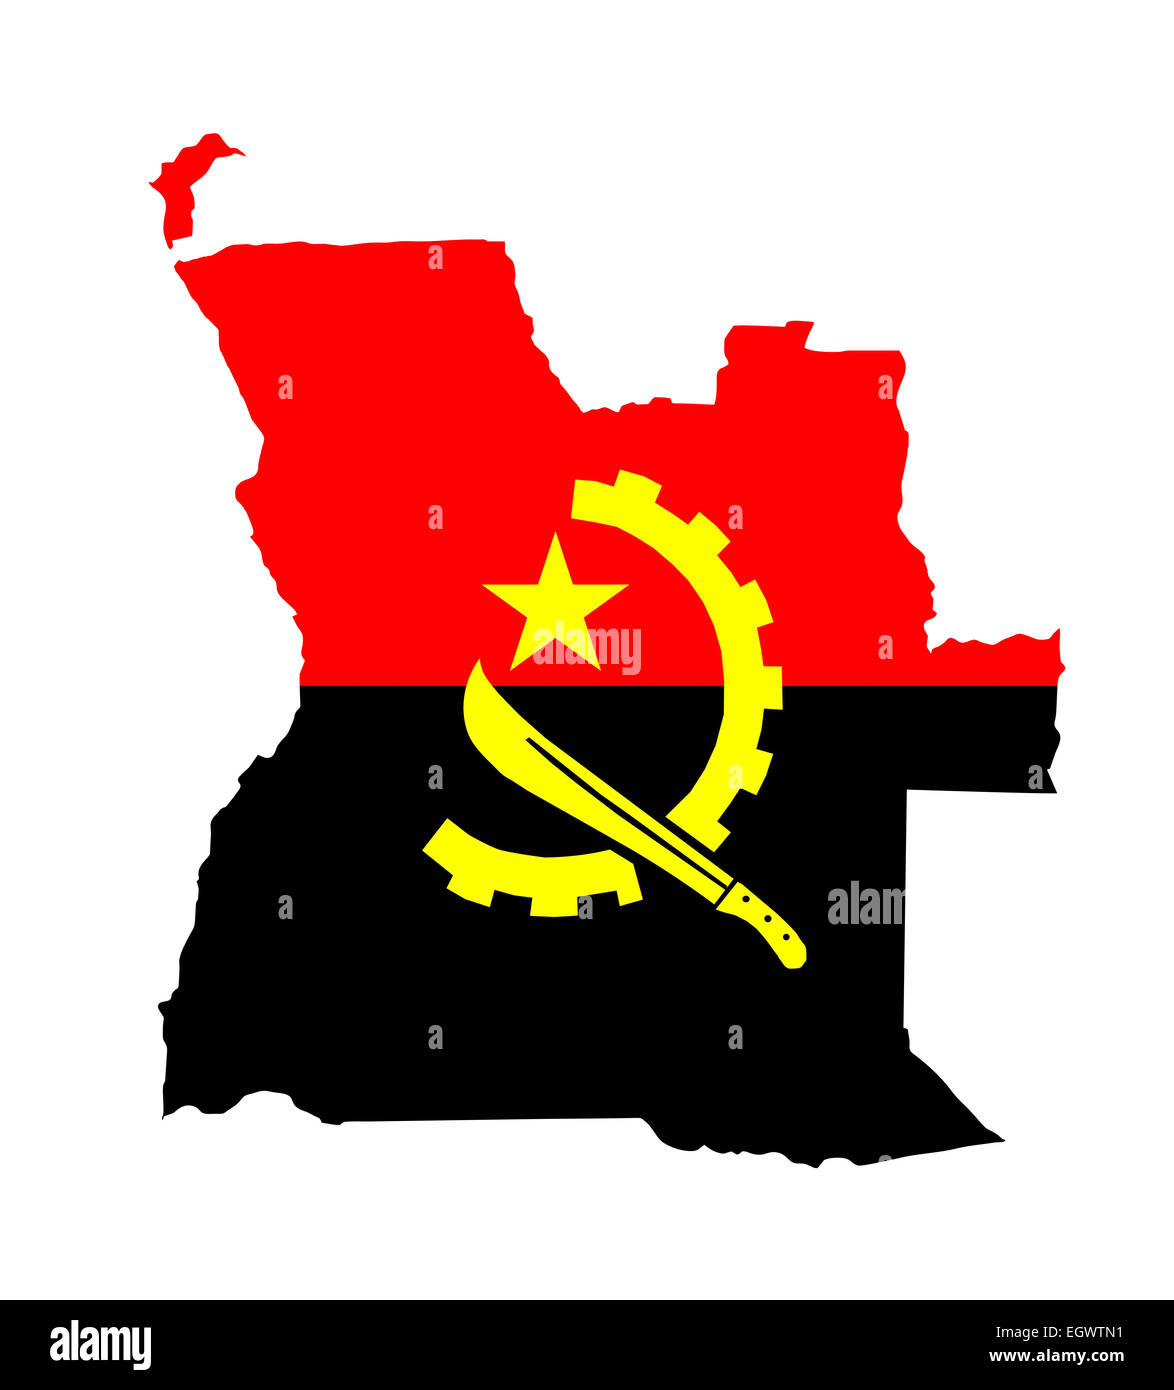 angola country flag map shape national symbol - Stock Image